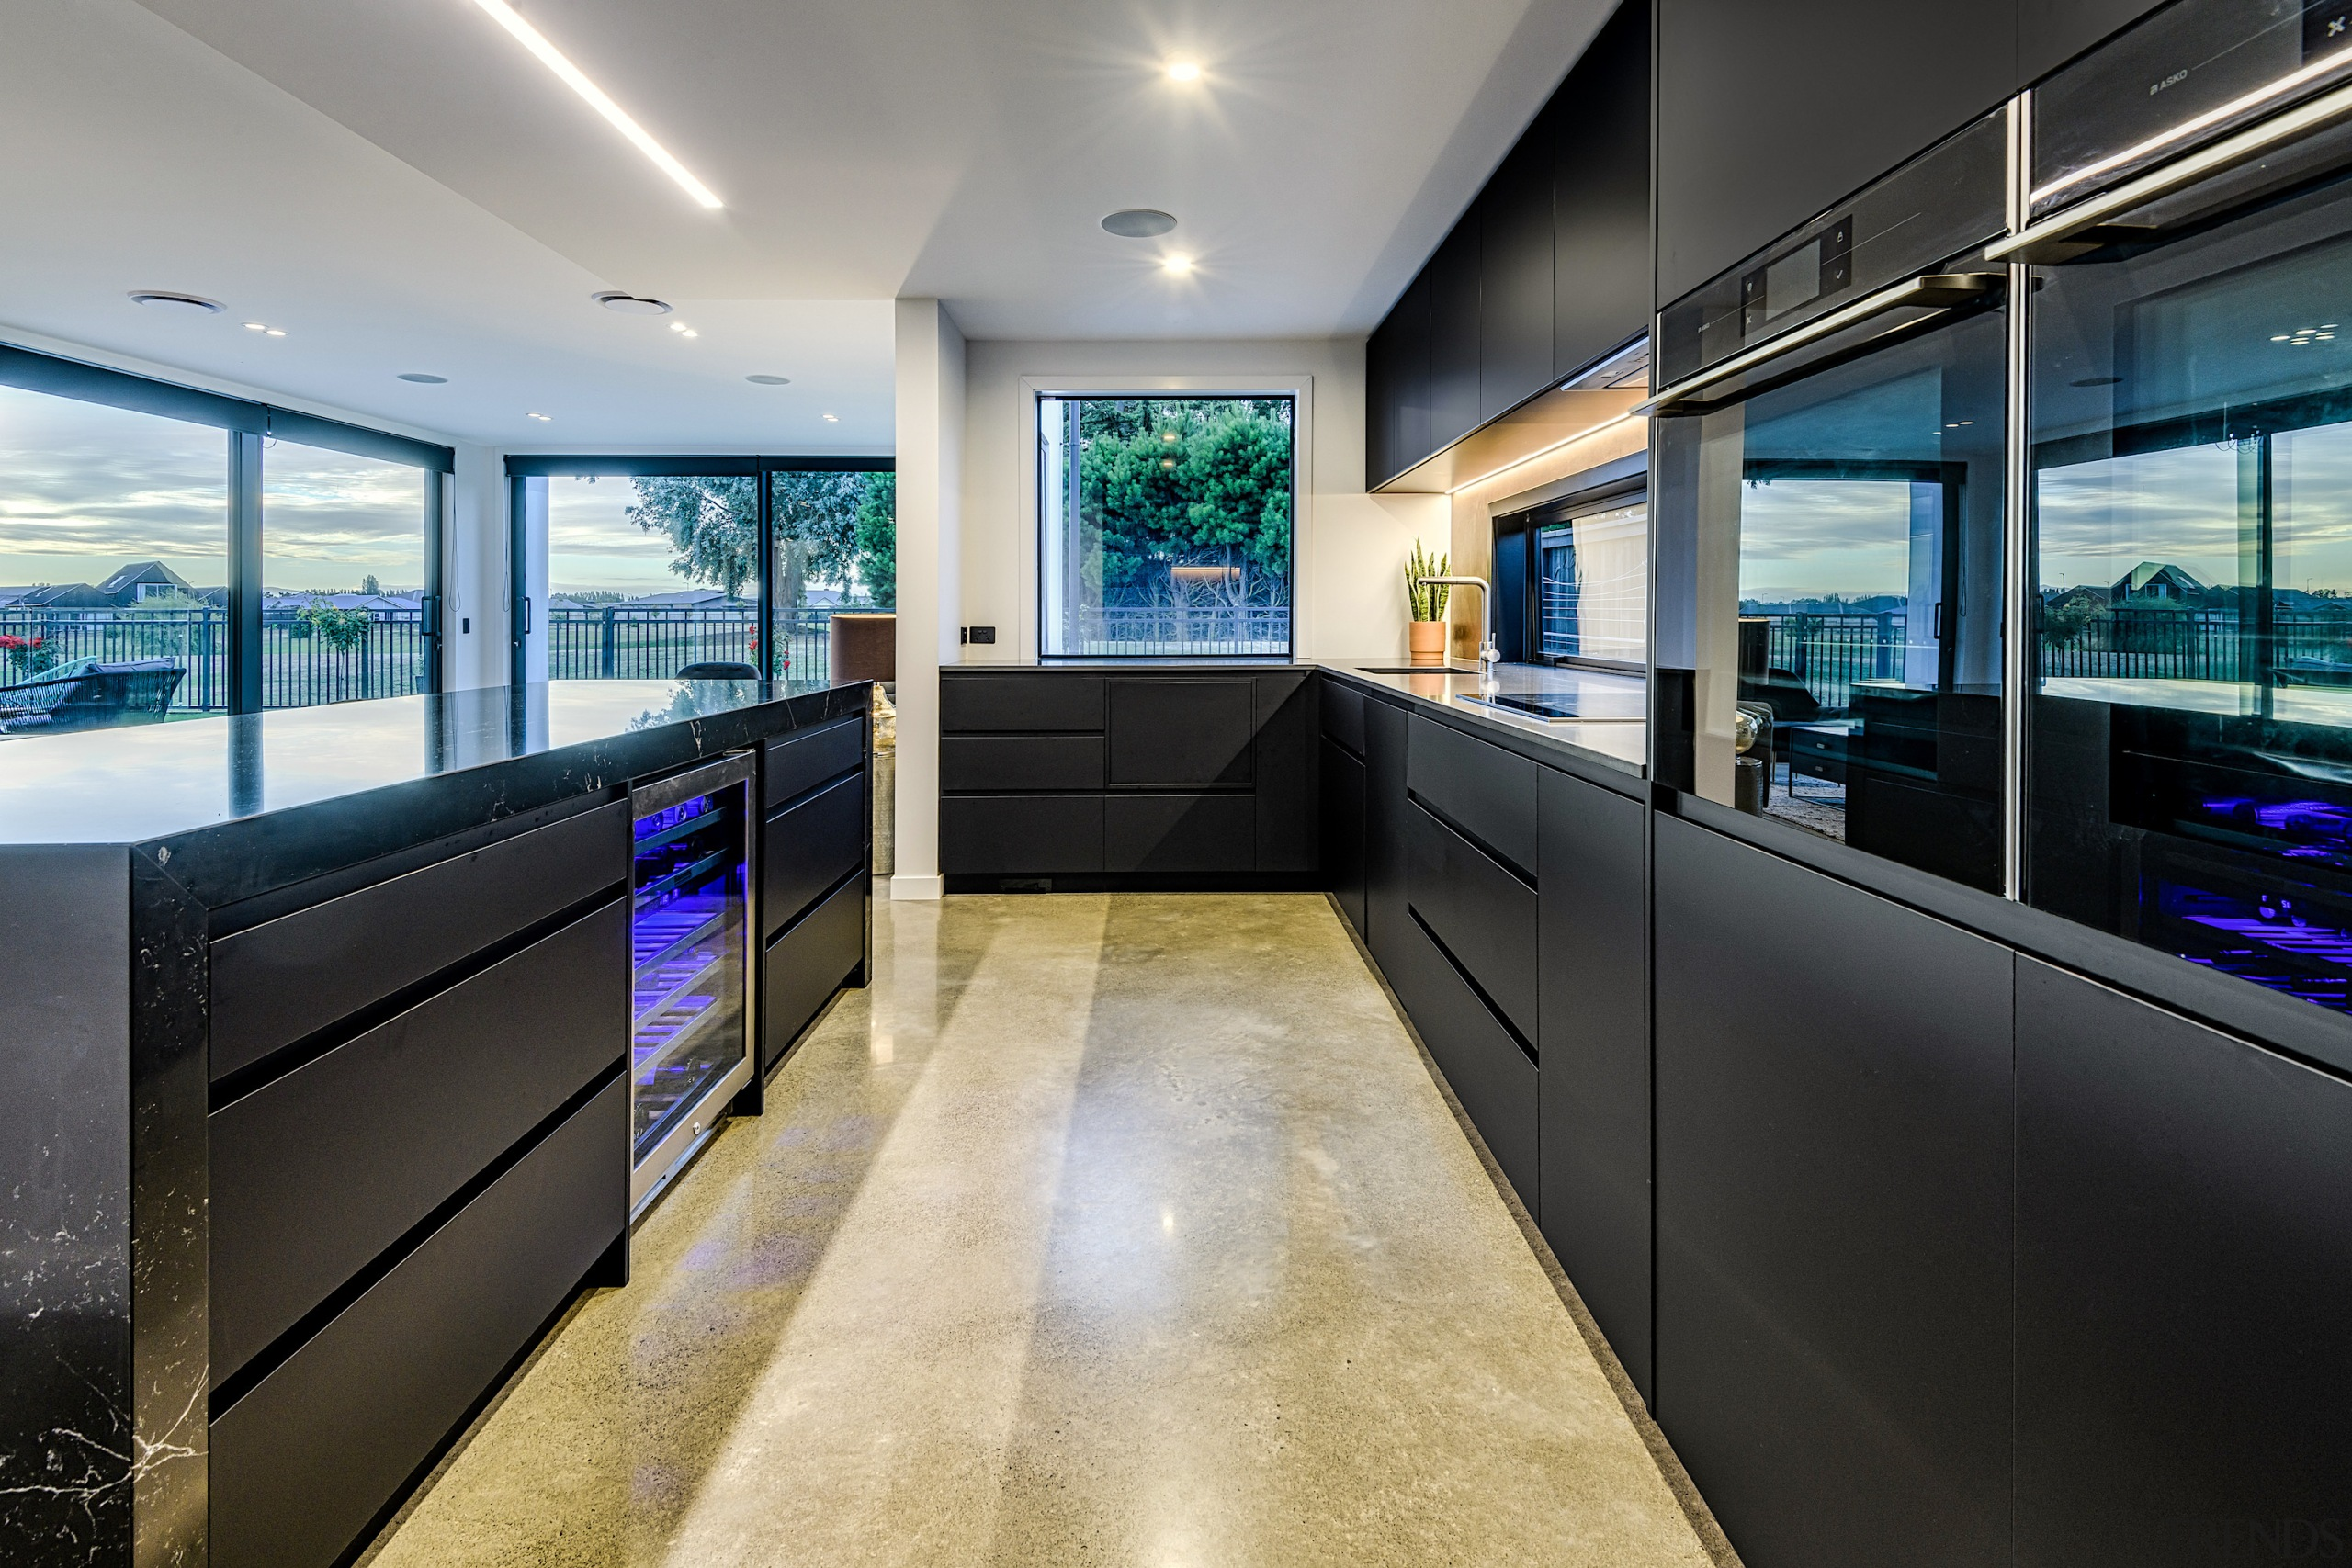 Stained concrete provides a solid anchor for this architecture, building, ceiling, countertop, design, floor, flooring, furniture, glass, home, house, interior design, lighting, office, property, real estate, room, black, gray